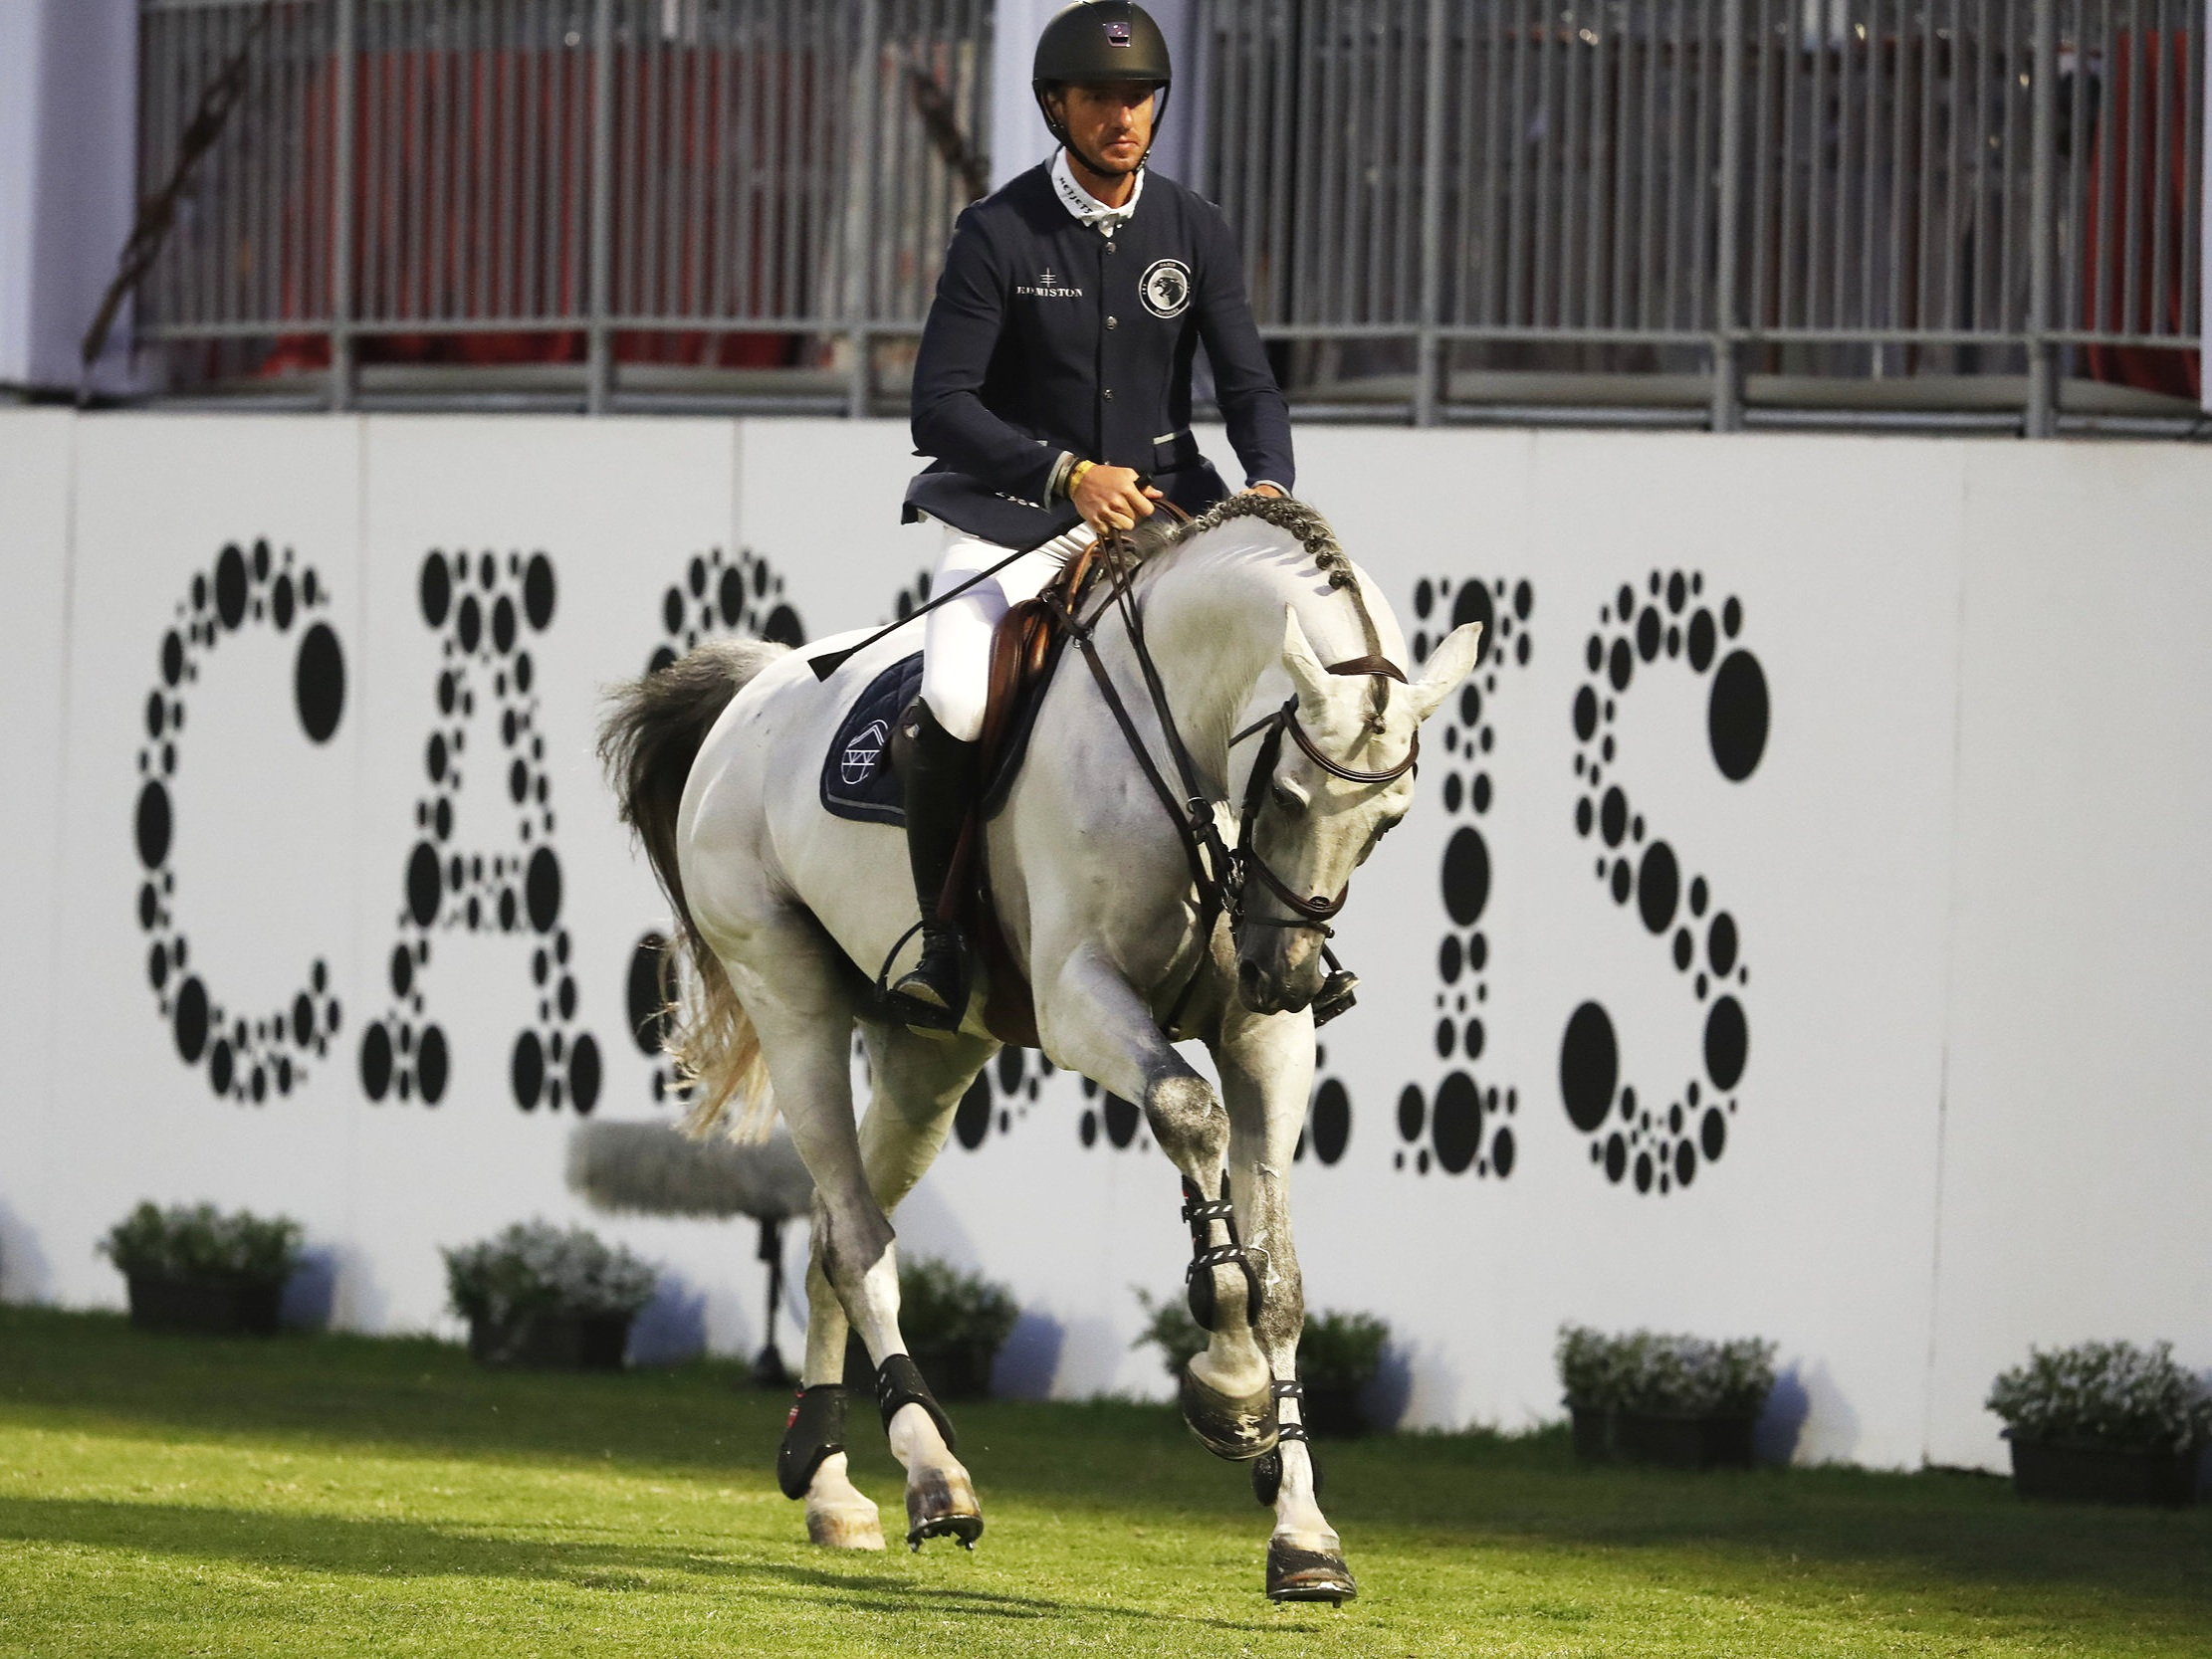 Gregory Wathelet and Mjt Nevados S at Global Champions League of Cascais 2019. Photo by Stefano Grasso.